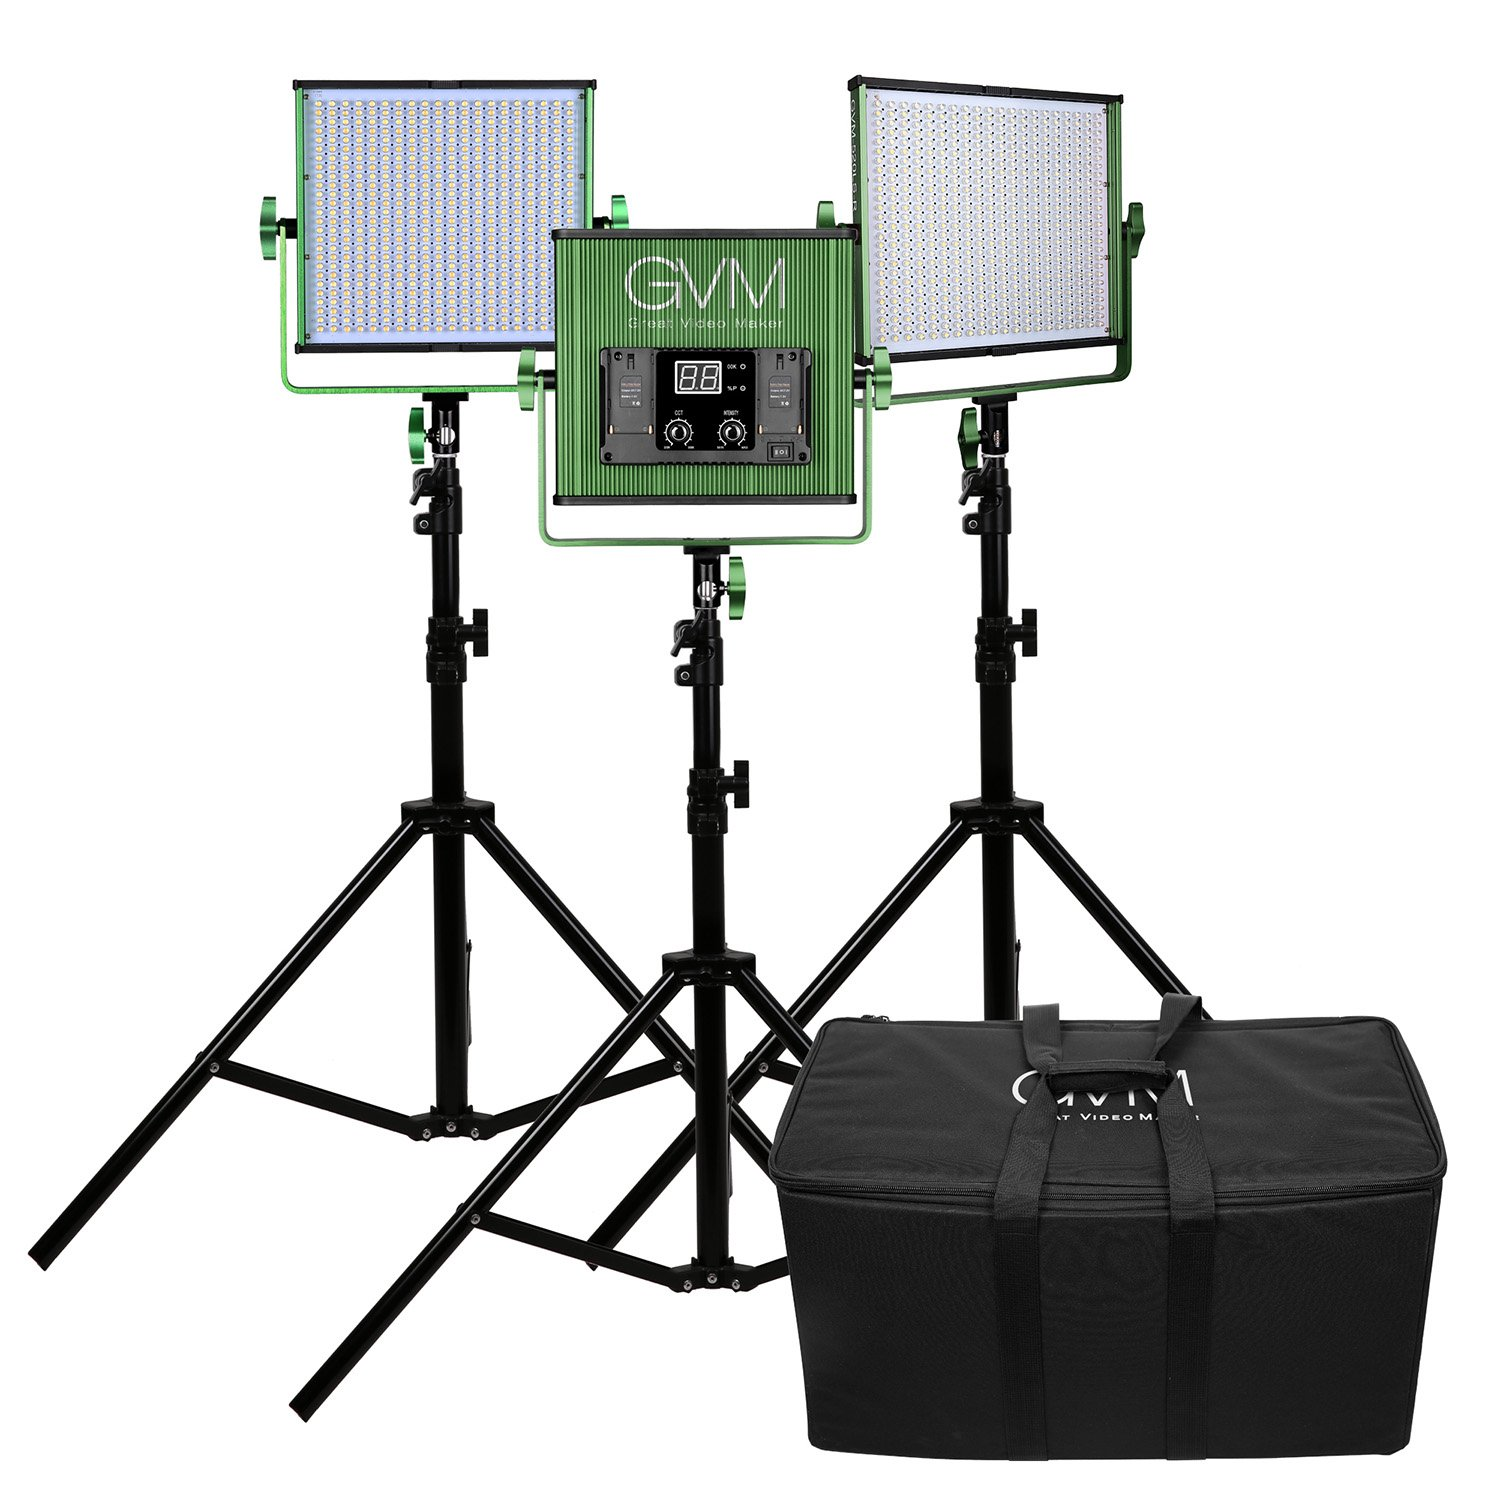 LED Video Light Panel 3pcs Kit GVM 520LS CRI97+ TLCI97+ 18500lux Dimmable Bi-color 3200K-5600K Professional for Outdoor Interview Studio Portrait photographic lighting